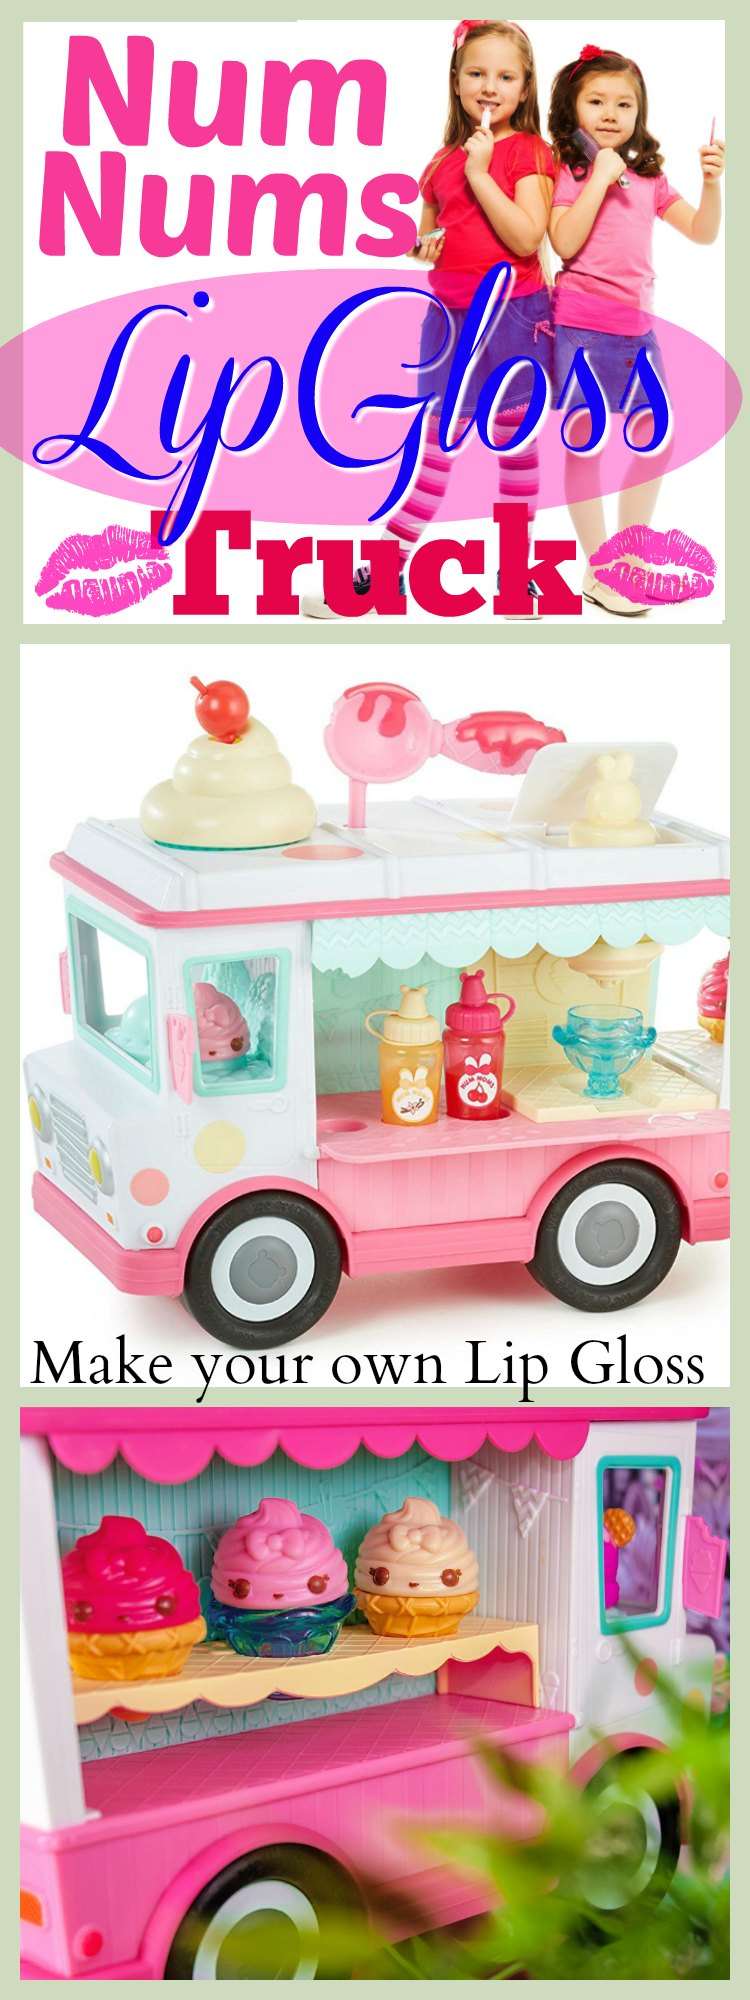 Where Can I Buy Num Noms Lip Gloss Truck